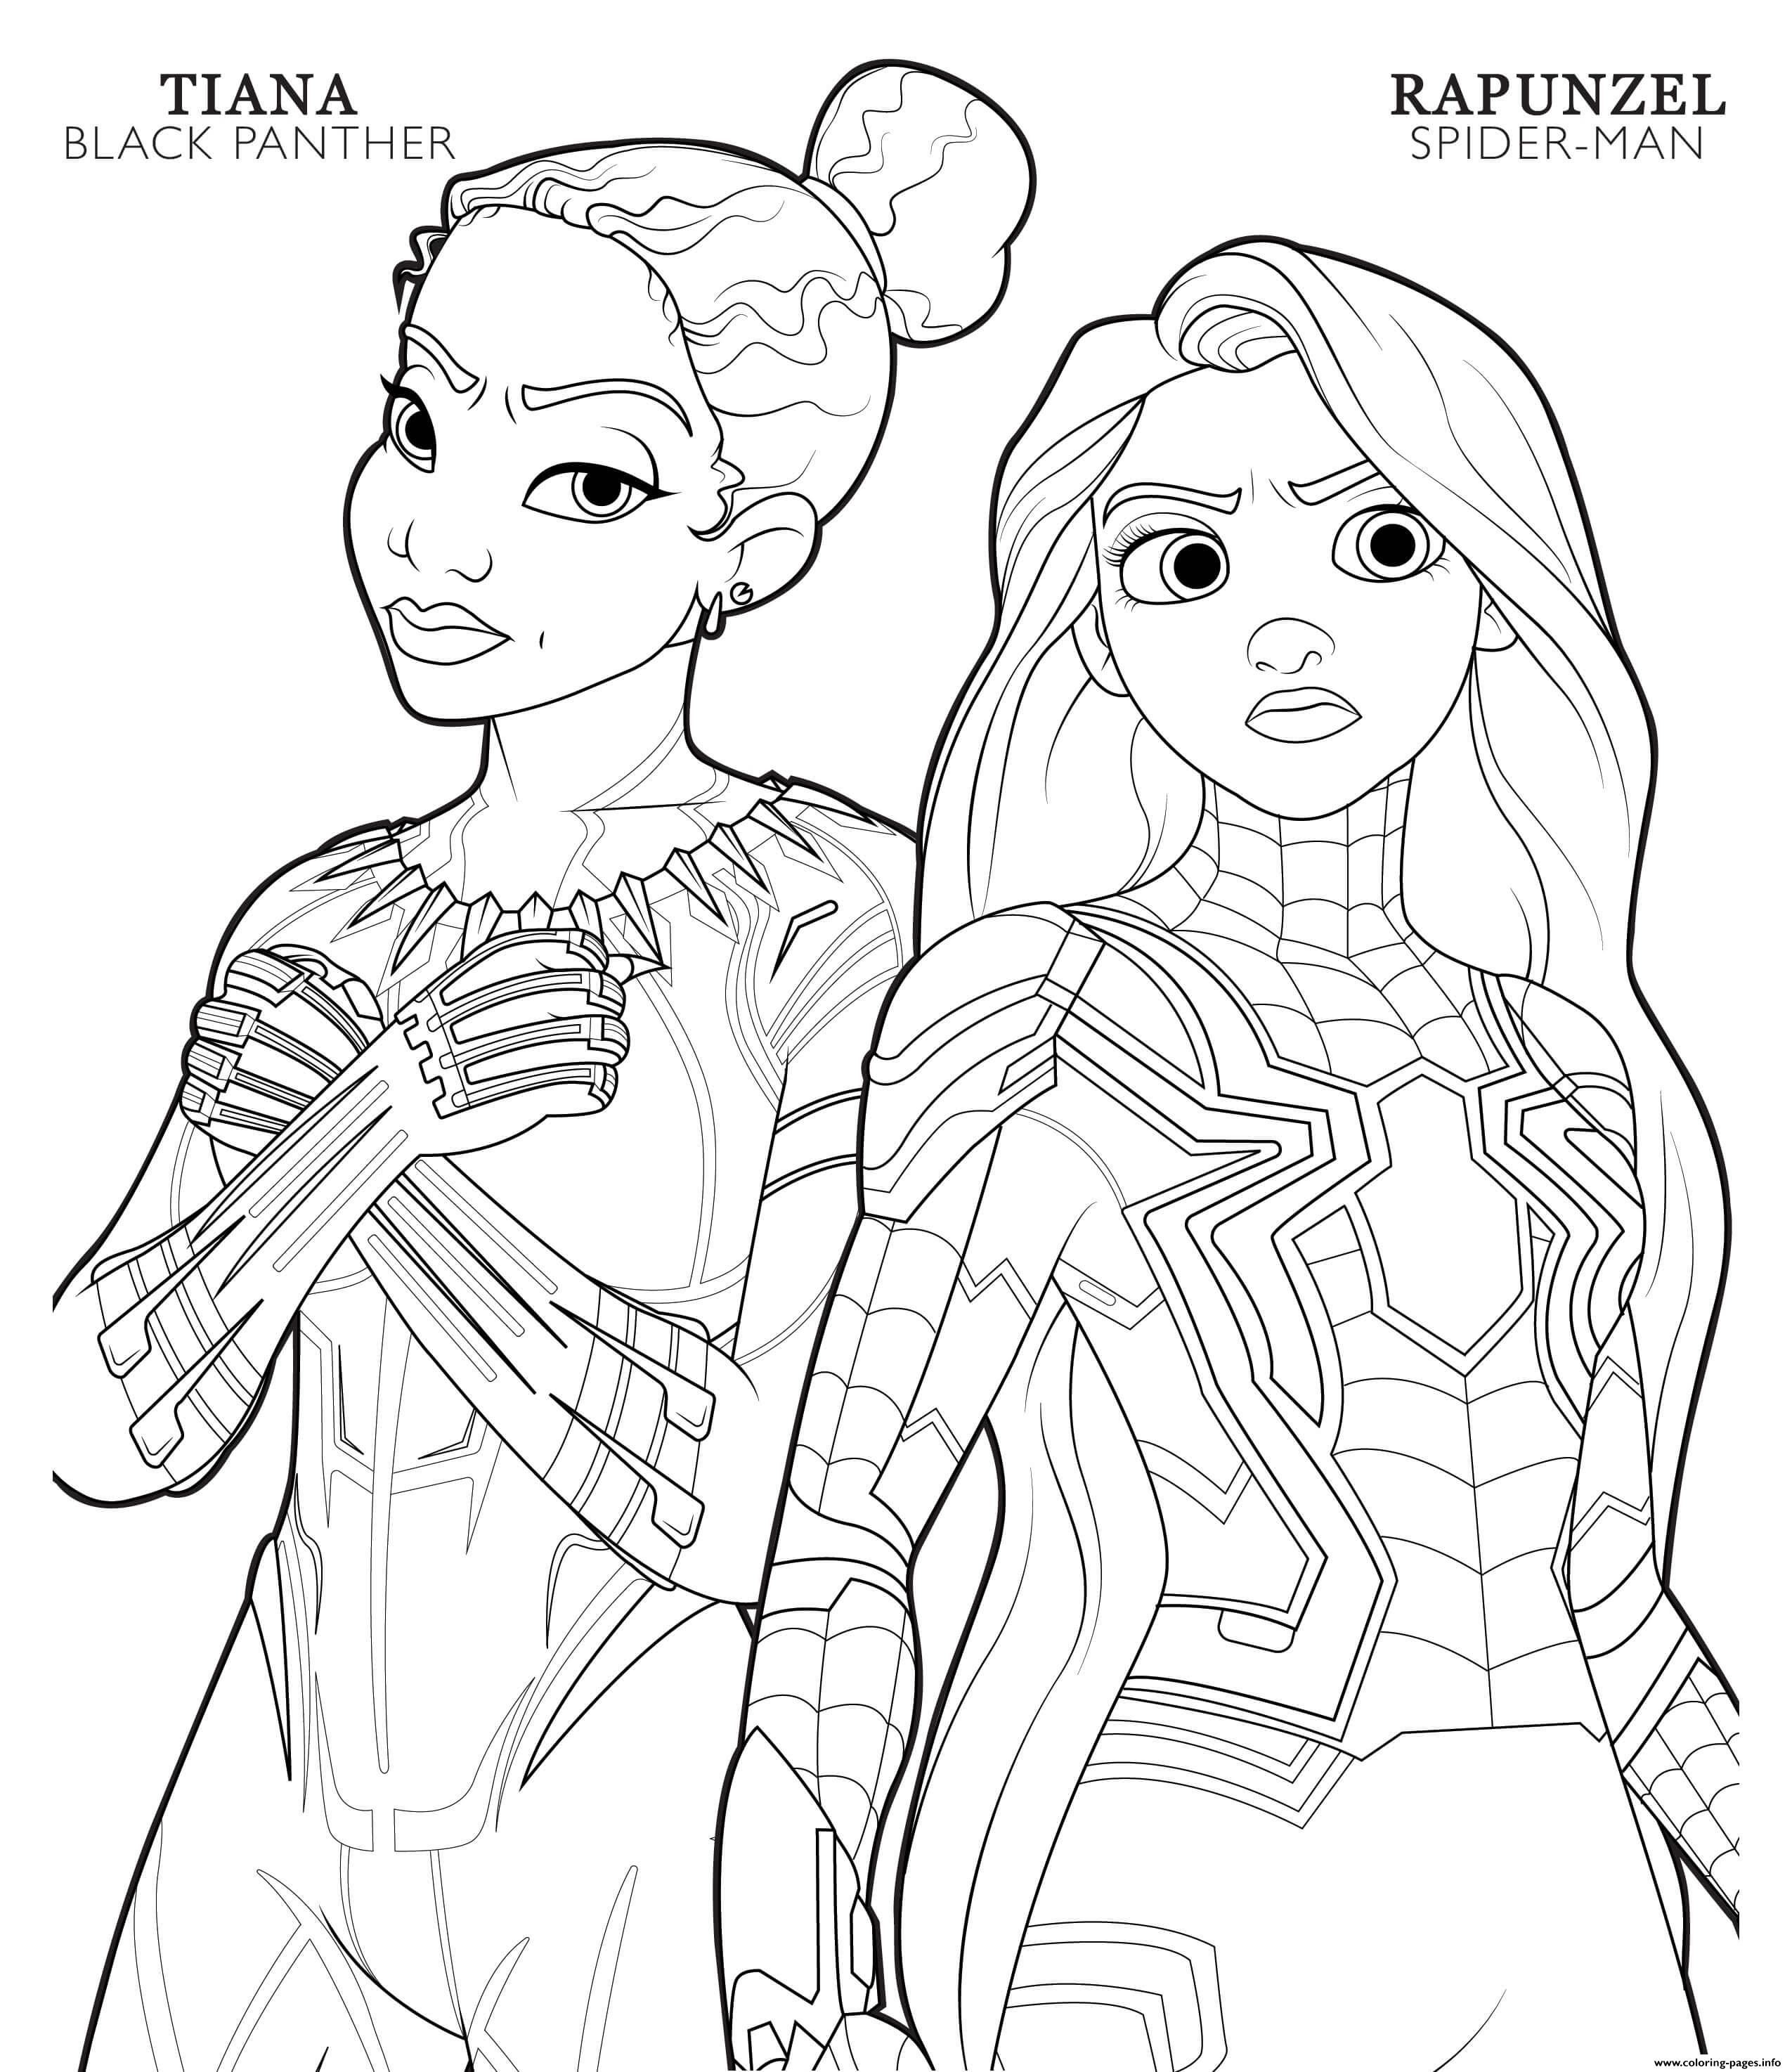 Black Panther Tiana And Spider Man Rapunzel Disney Avengers Coloring Pages Printable